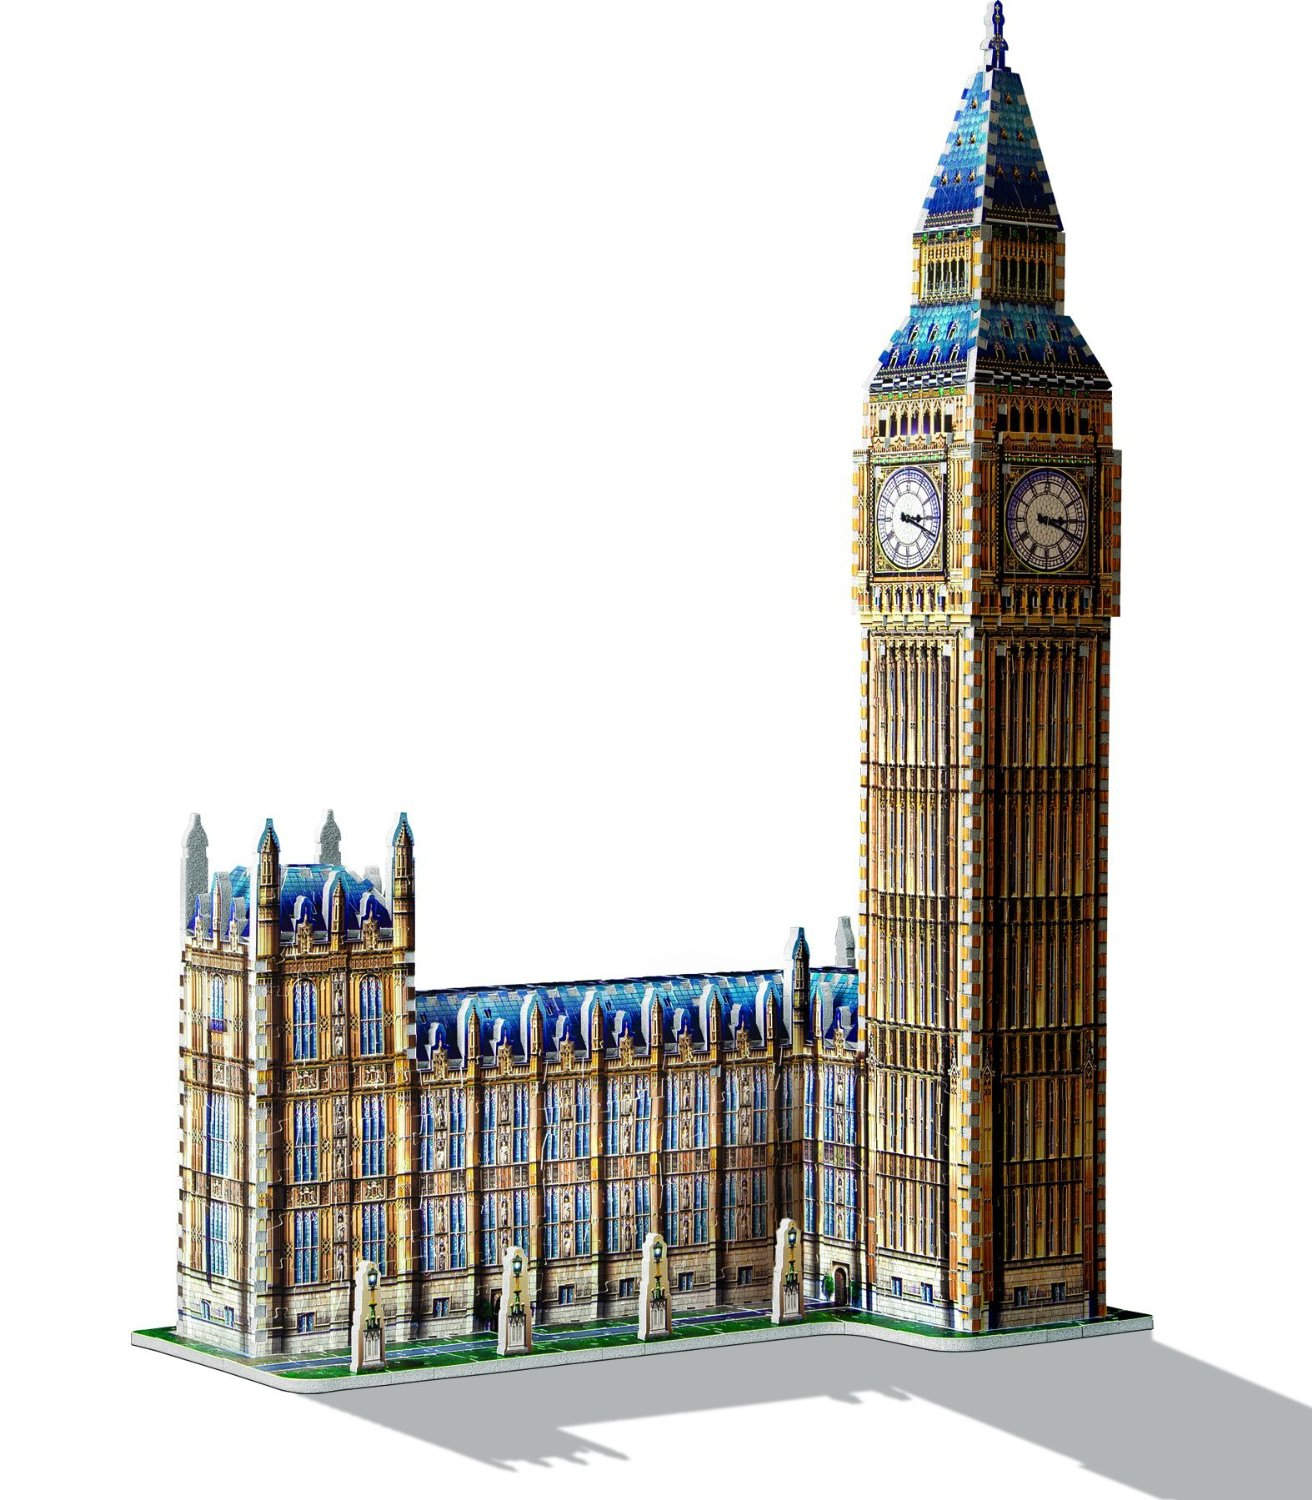 wrebbit-3d-puzzle-3d-londres-big-ben-et-parlement-puzzle-890-pieces.12725-1.fs.jpg